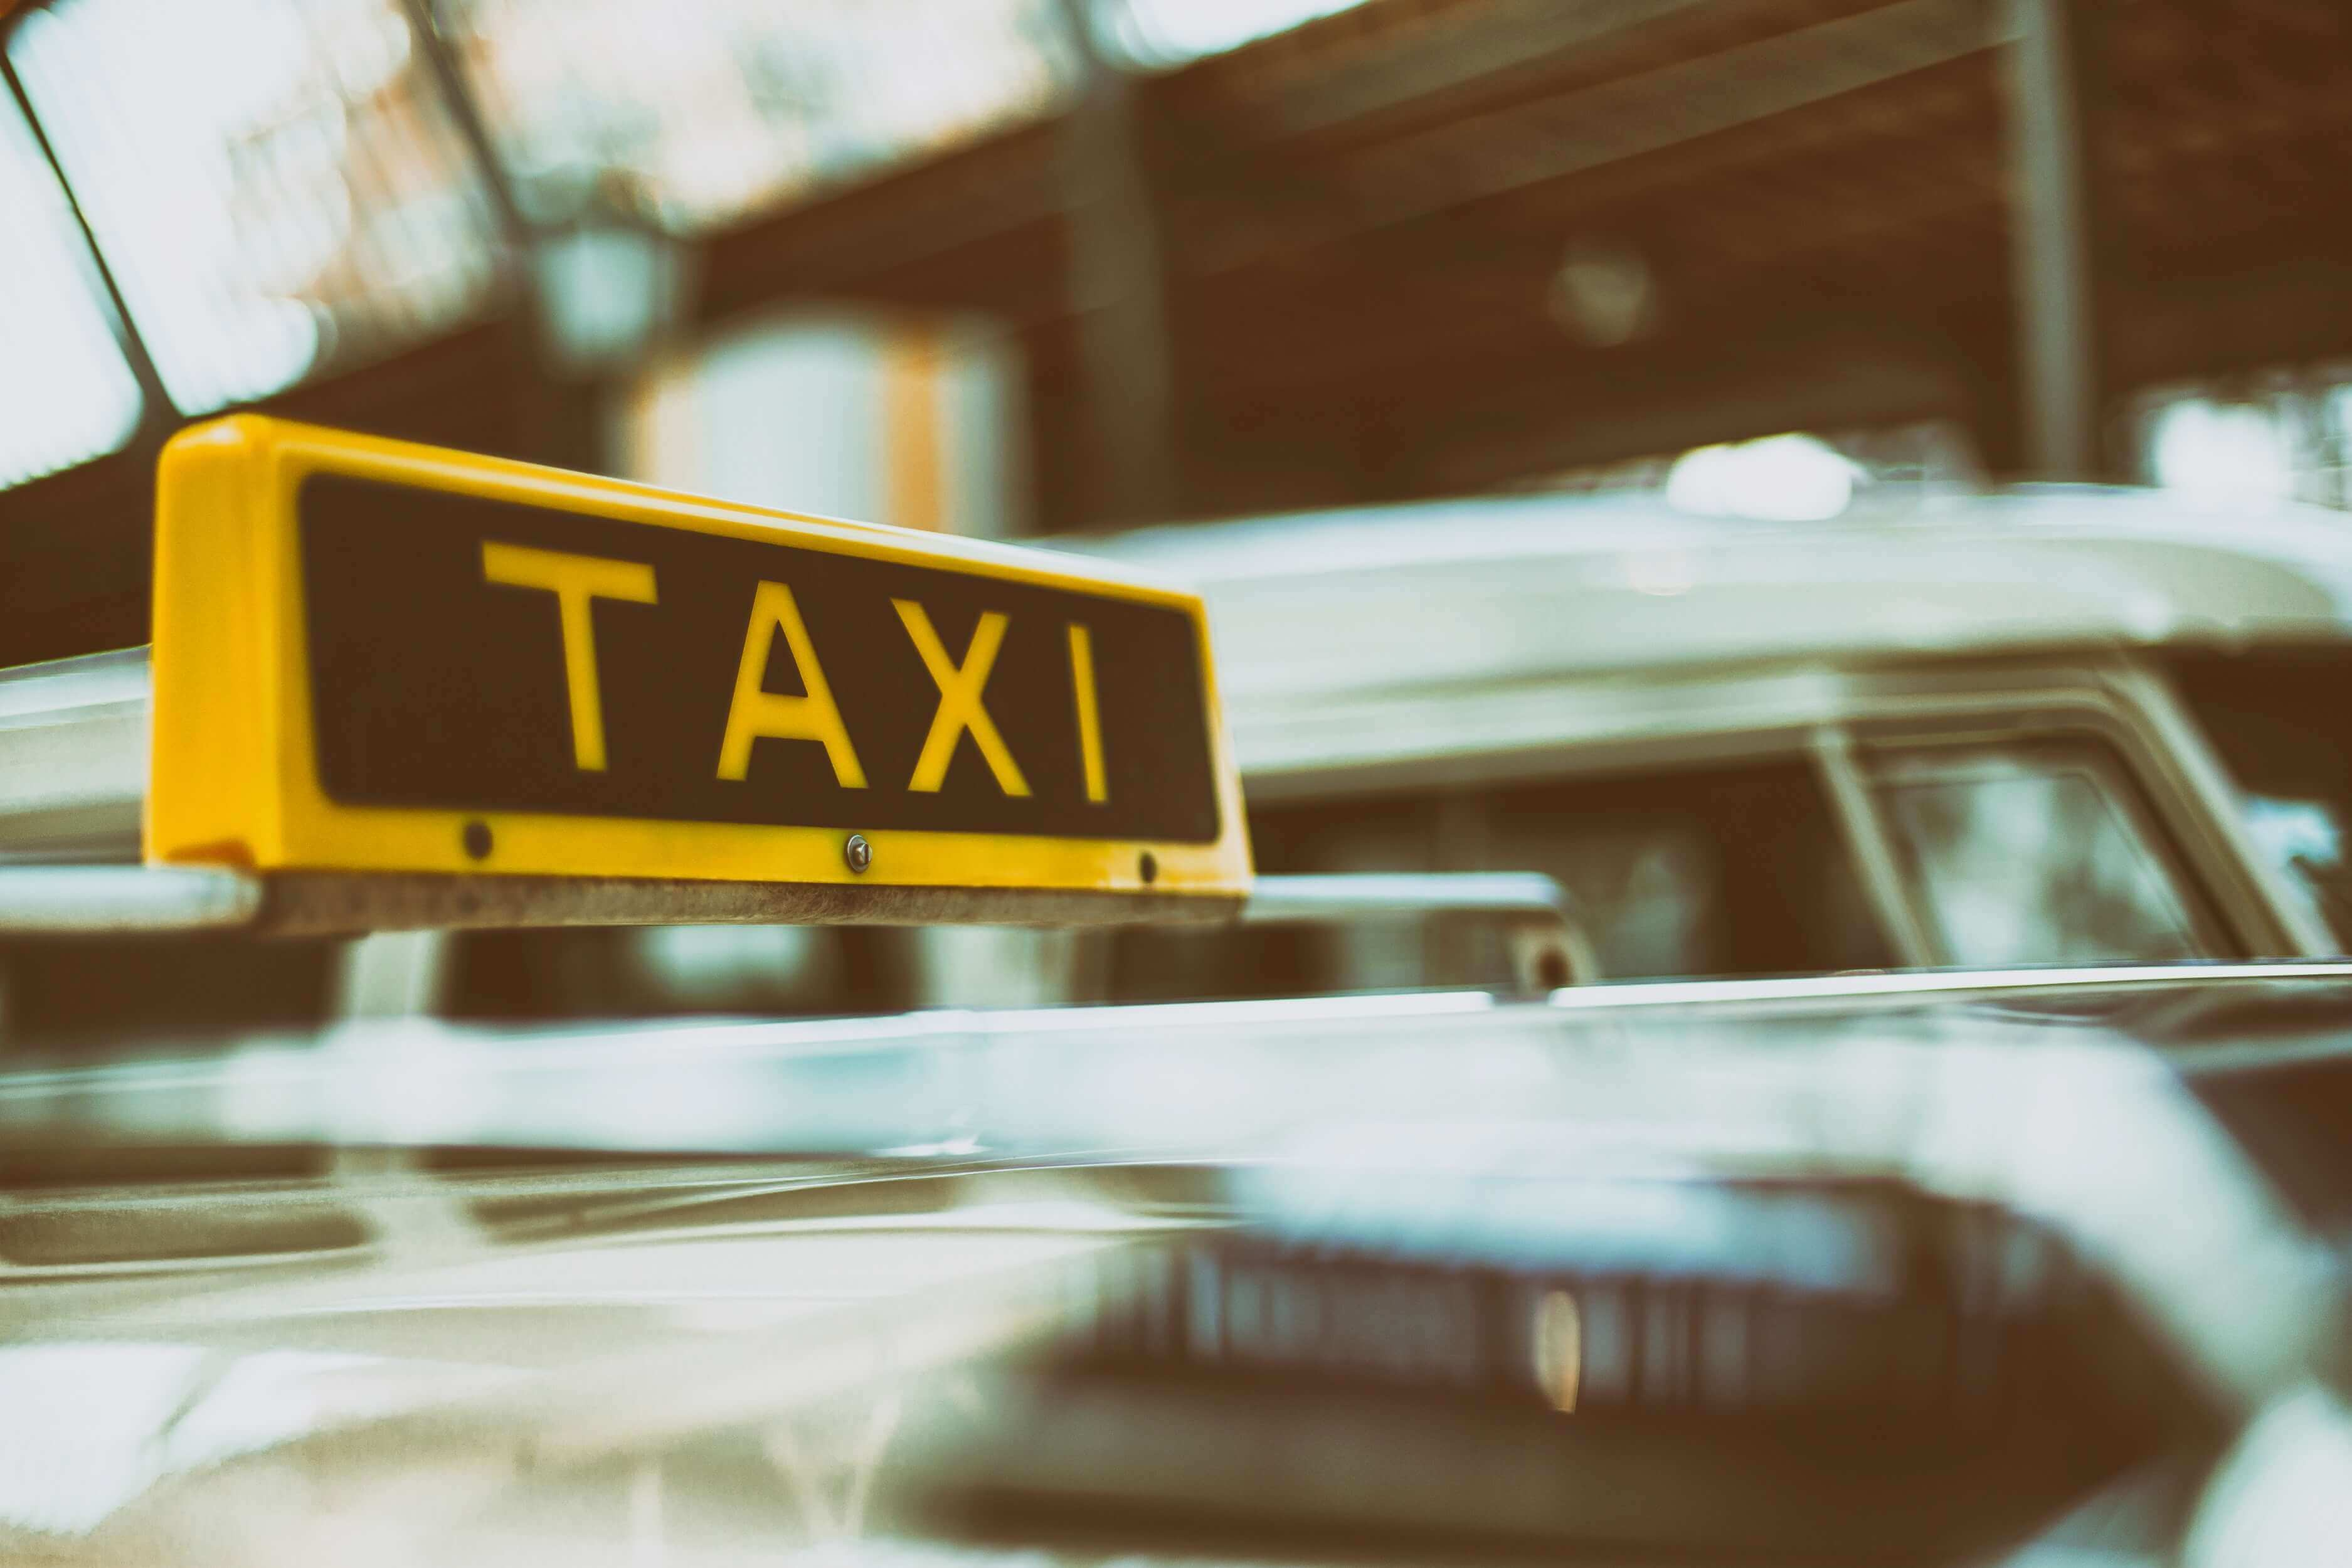 How To Build an App Like Ola? Tips from Taxi App Developers